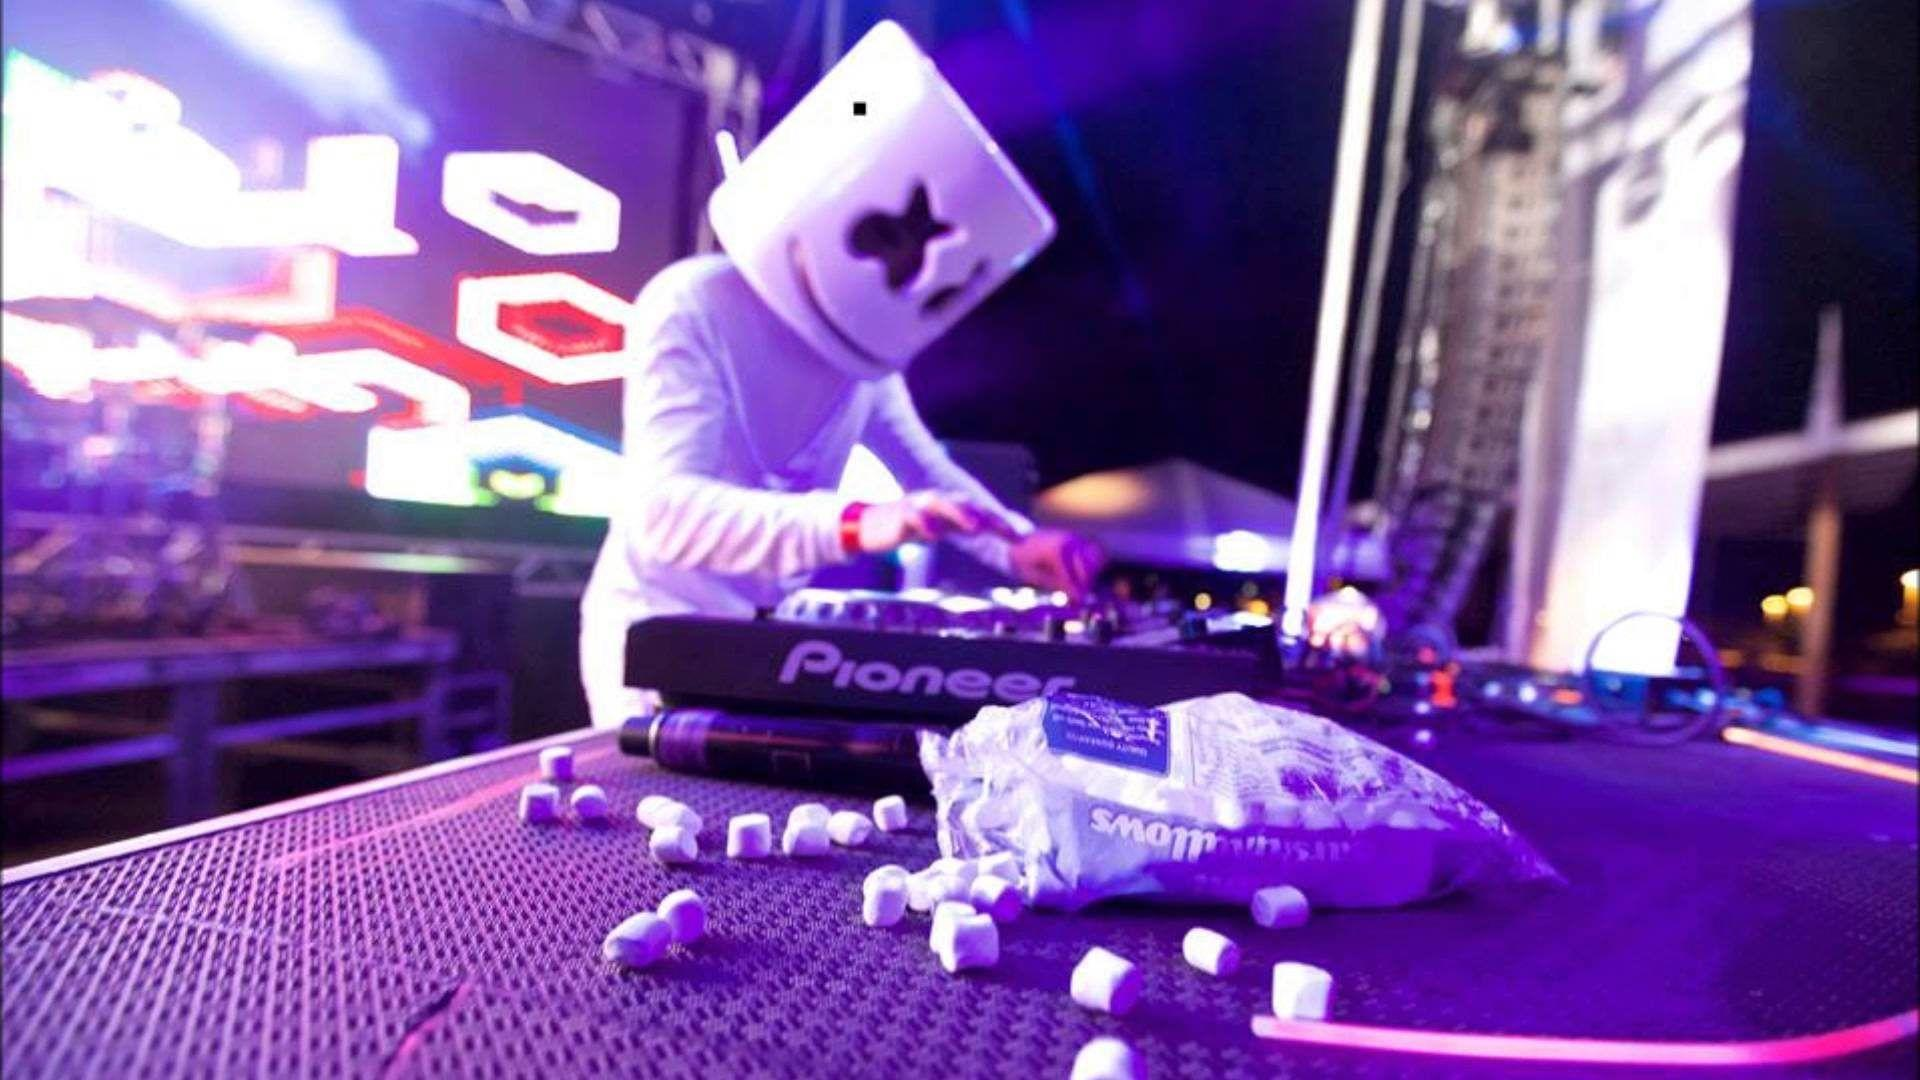 Marshmello Wallpaper For Desktop | HD Picturez